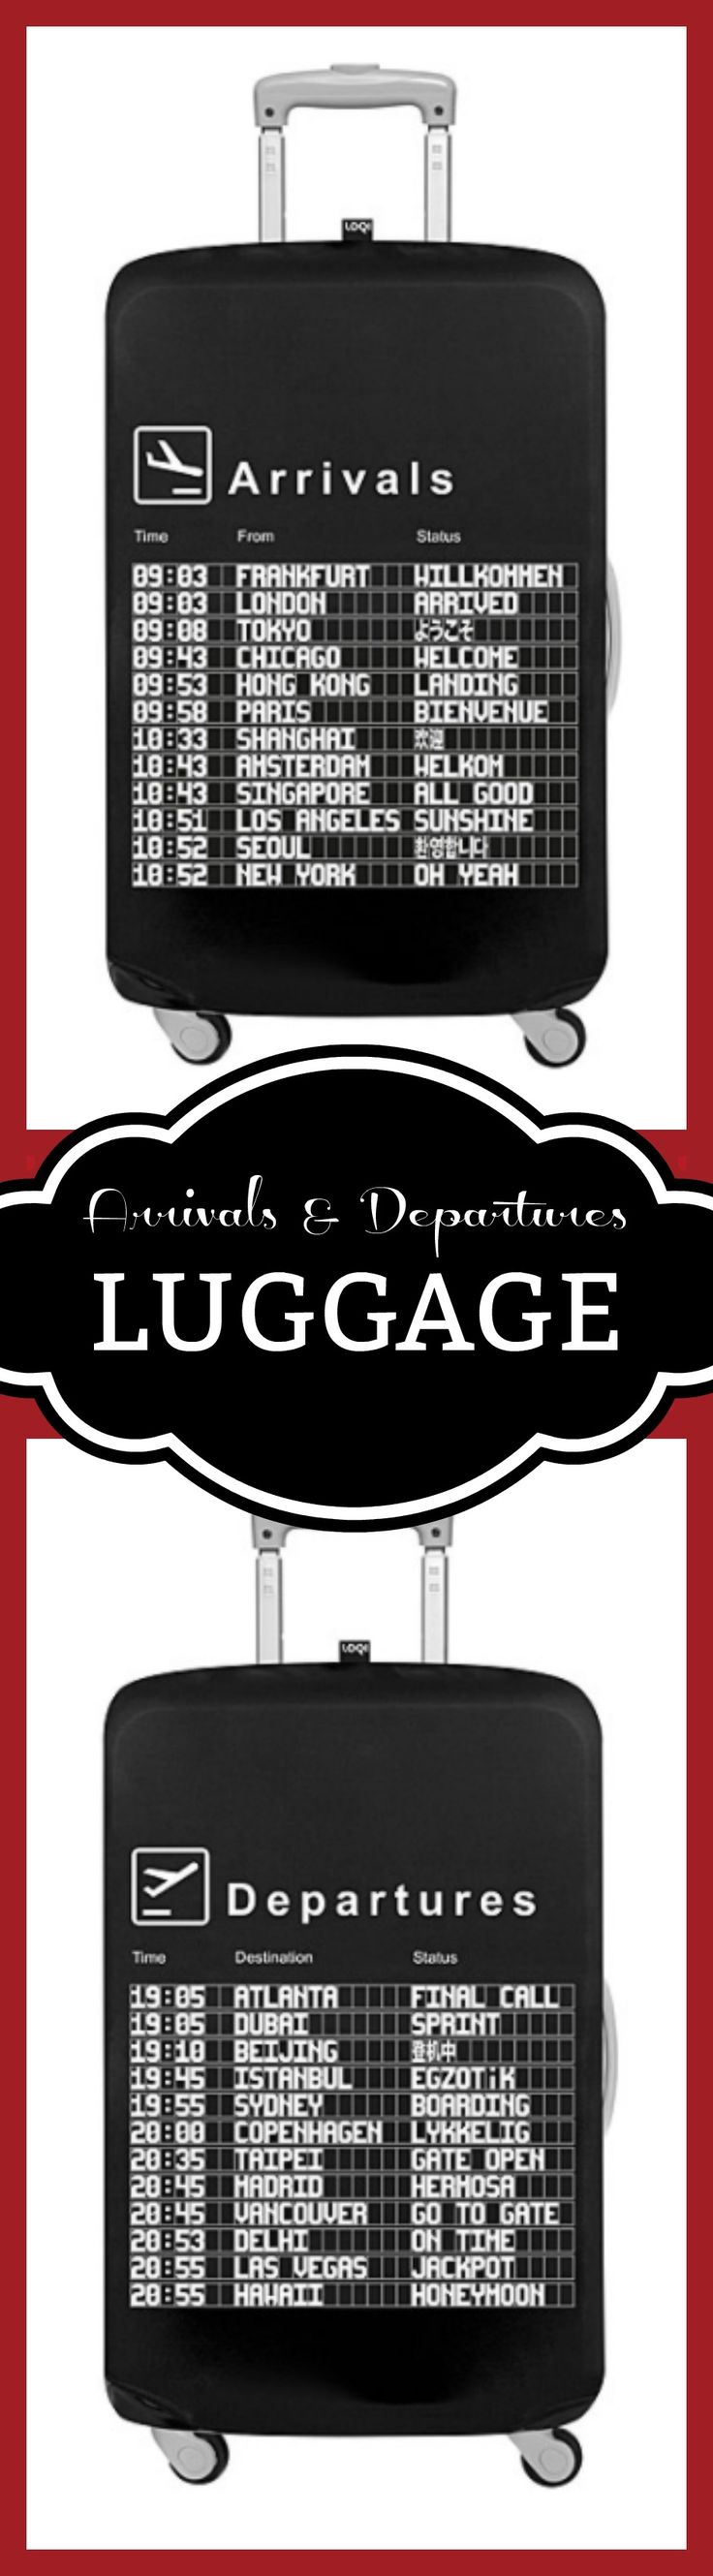 Celebrate life's journeys with this luggage cover modeled after airport status screens